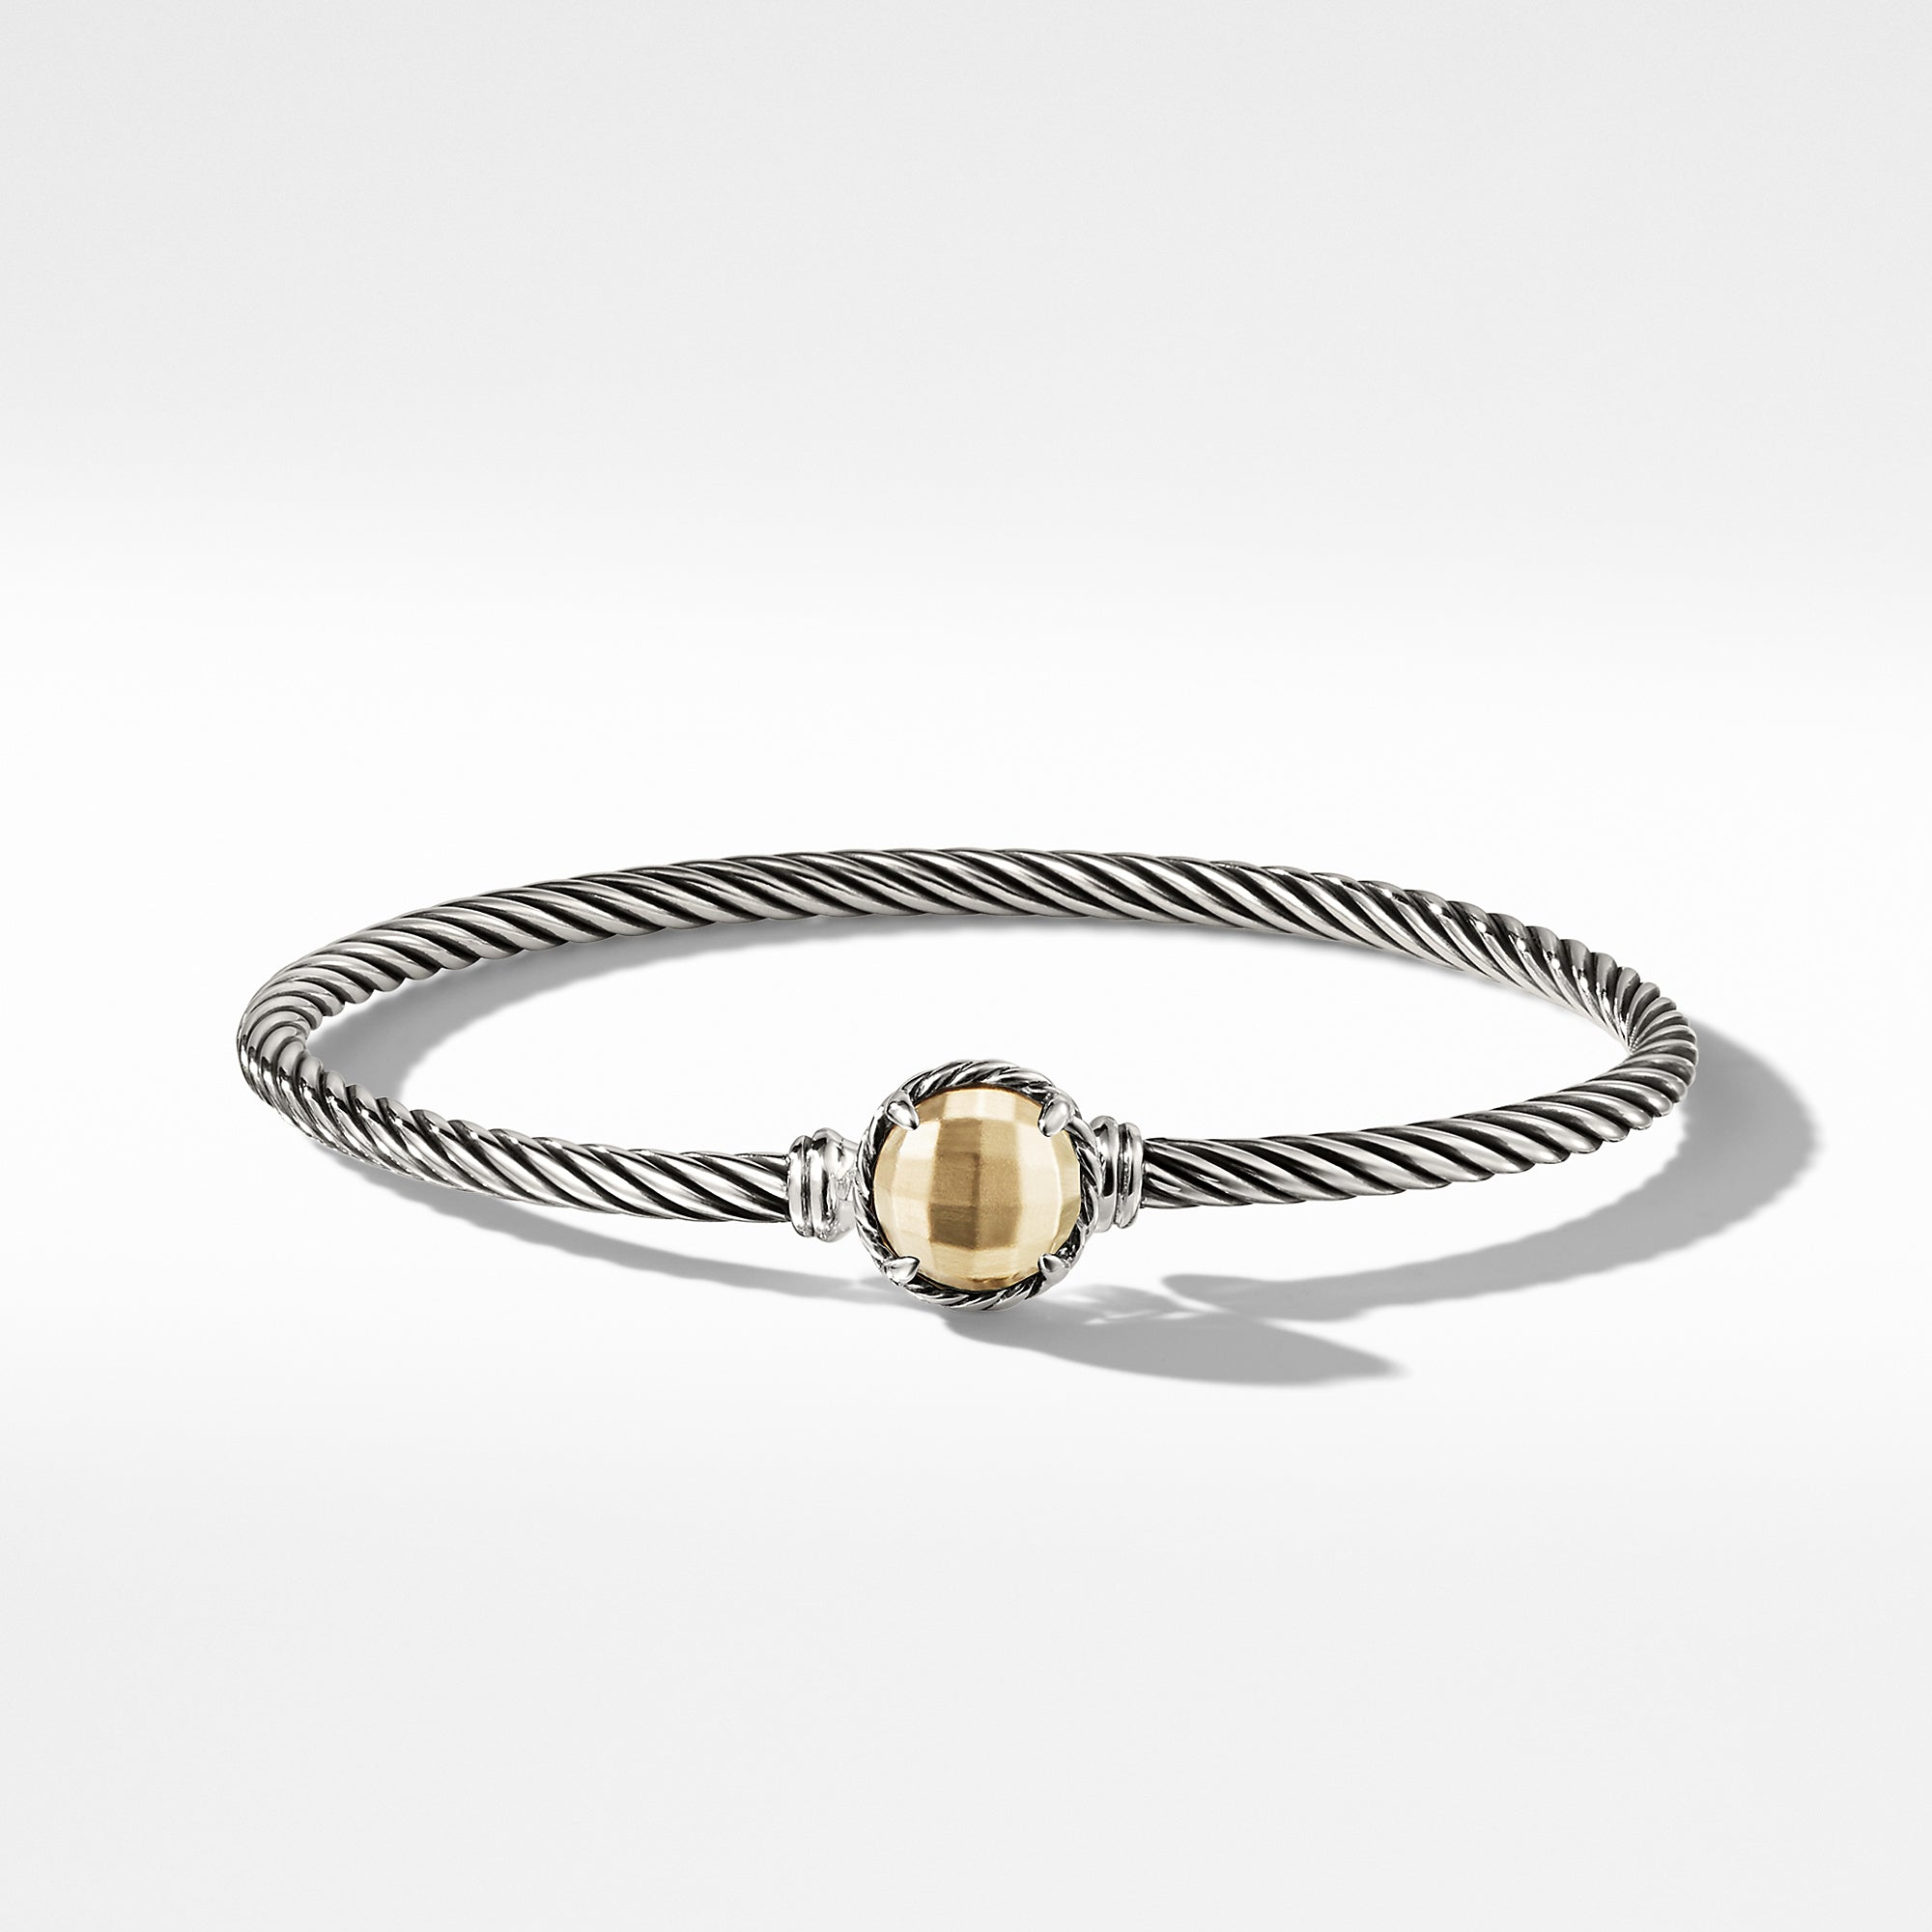 Chatelaine Bracelet with Gold Dome and 18K Gold